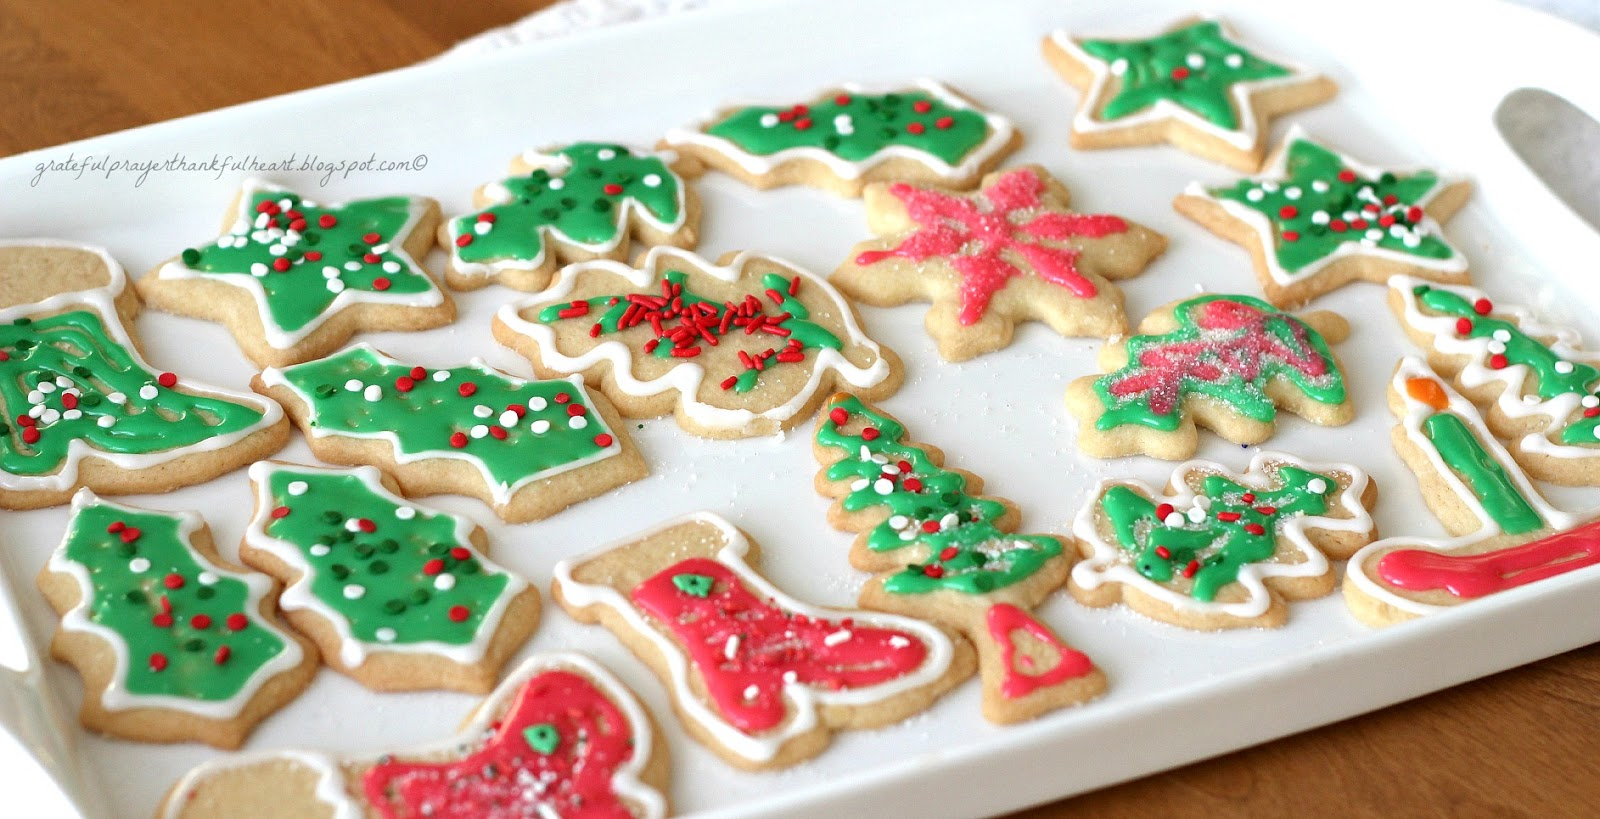 Frosted Sugar Cookies | Grateful Prayer | Thankful Heart